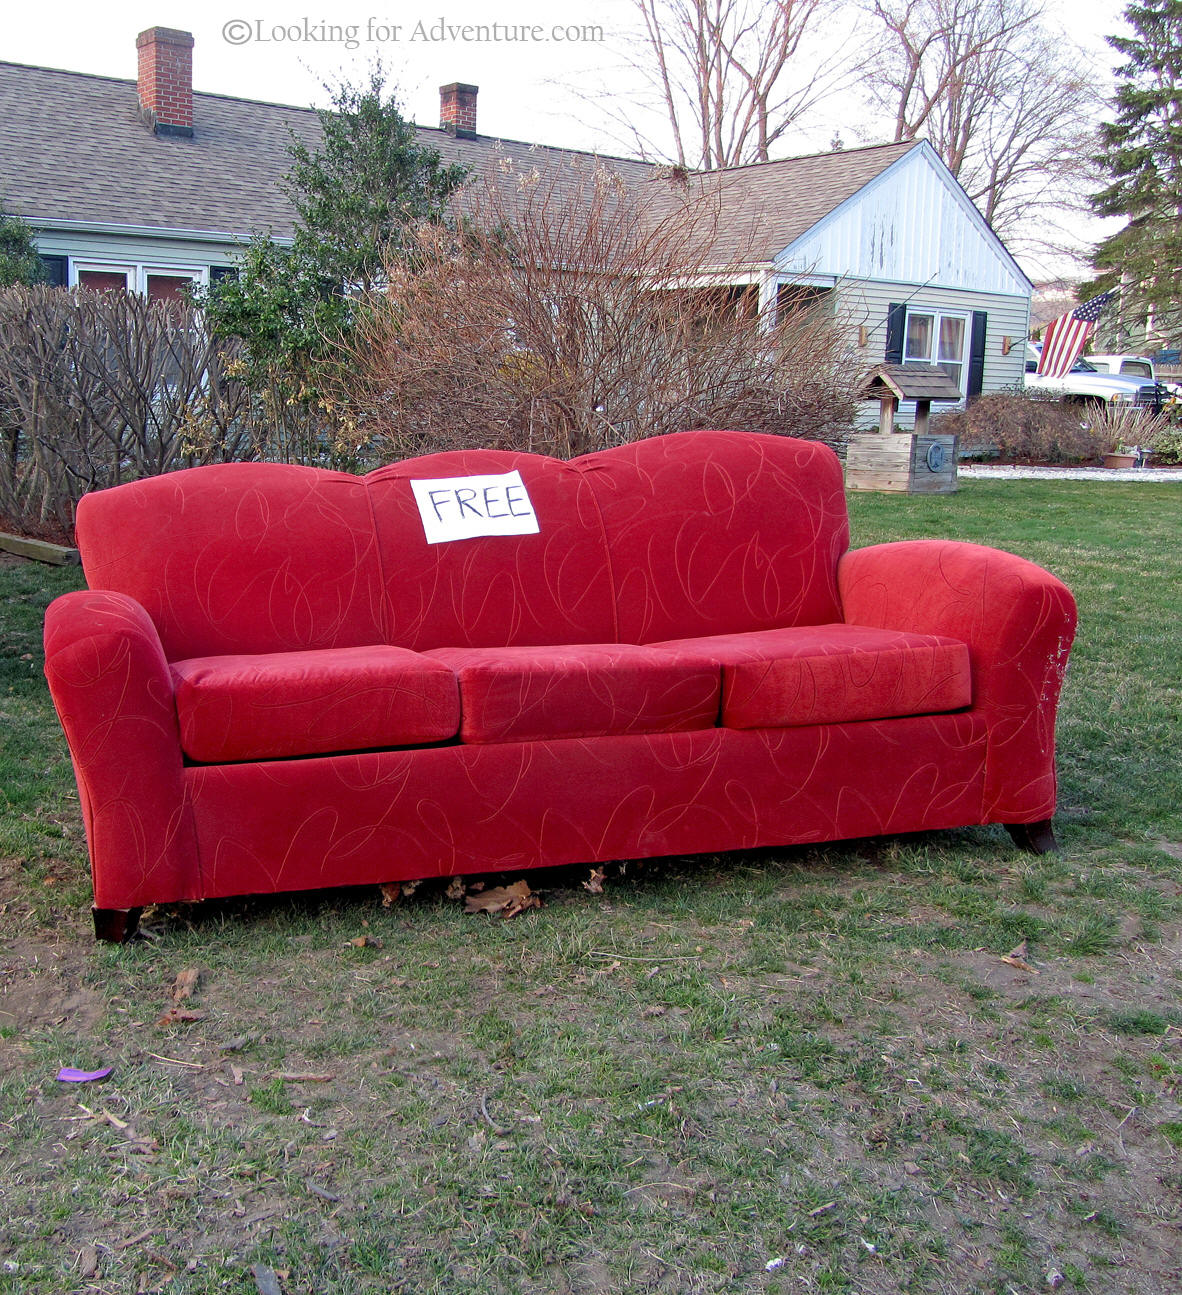 Roadside Red Couch Sofa Outside On The Front Lawn Of A House With A For Free  Sign